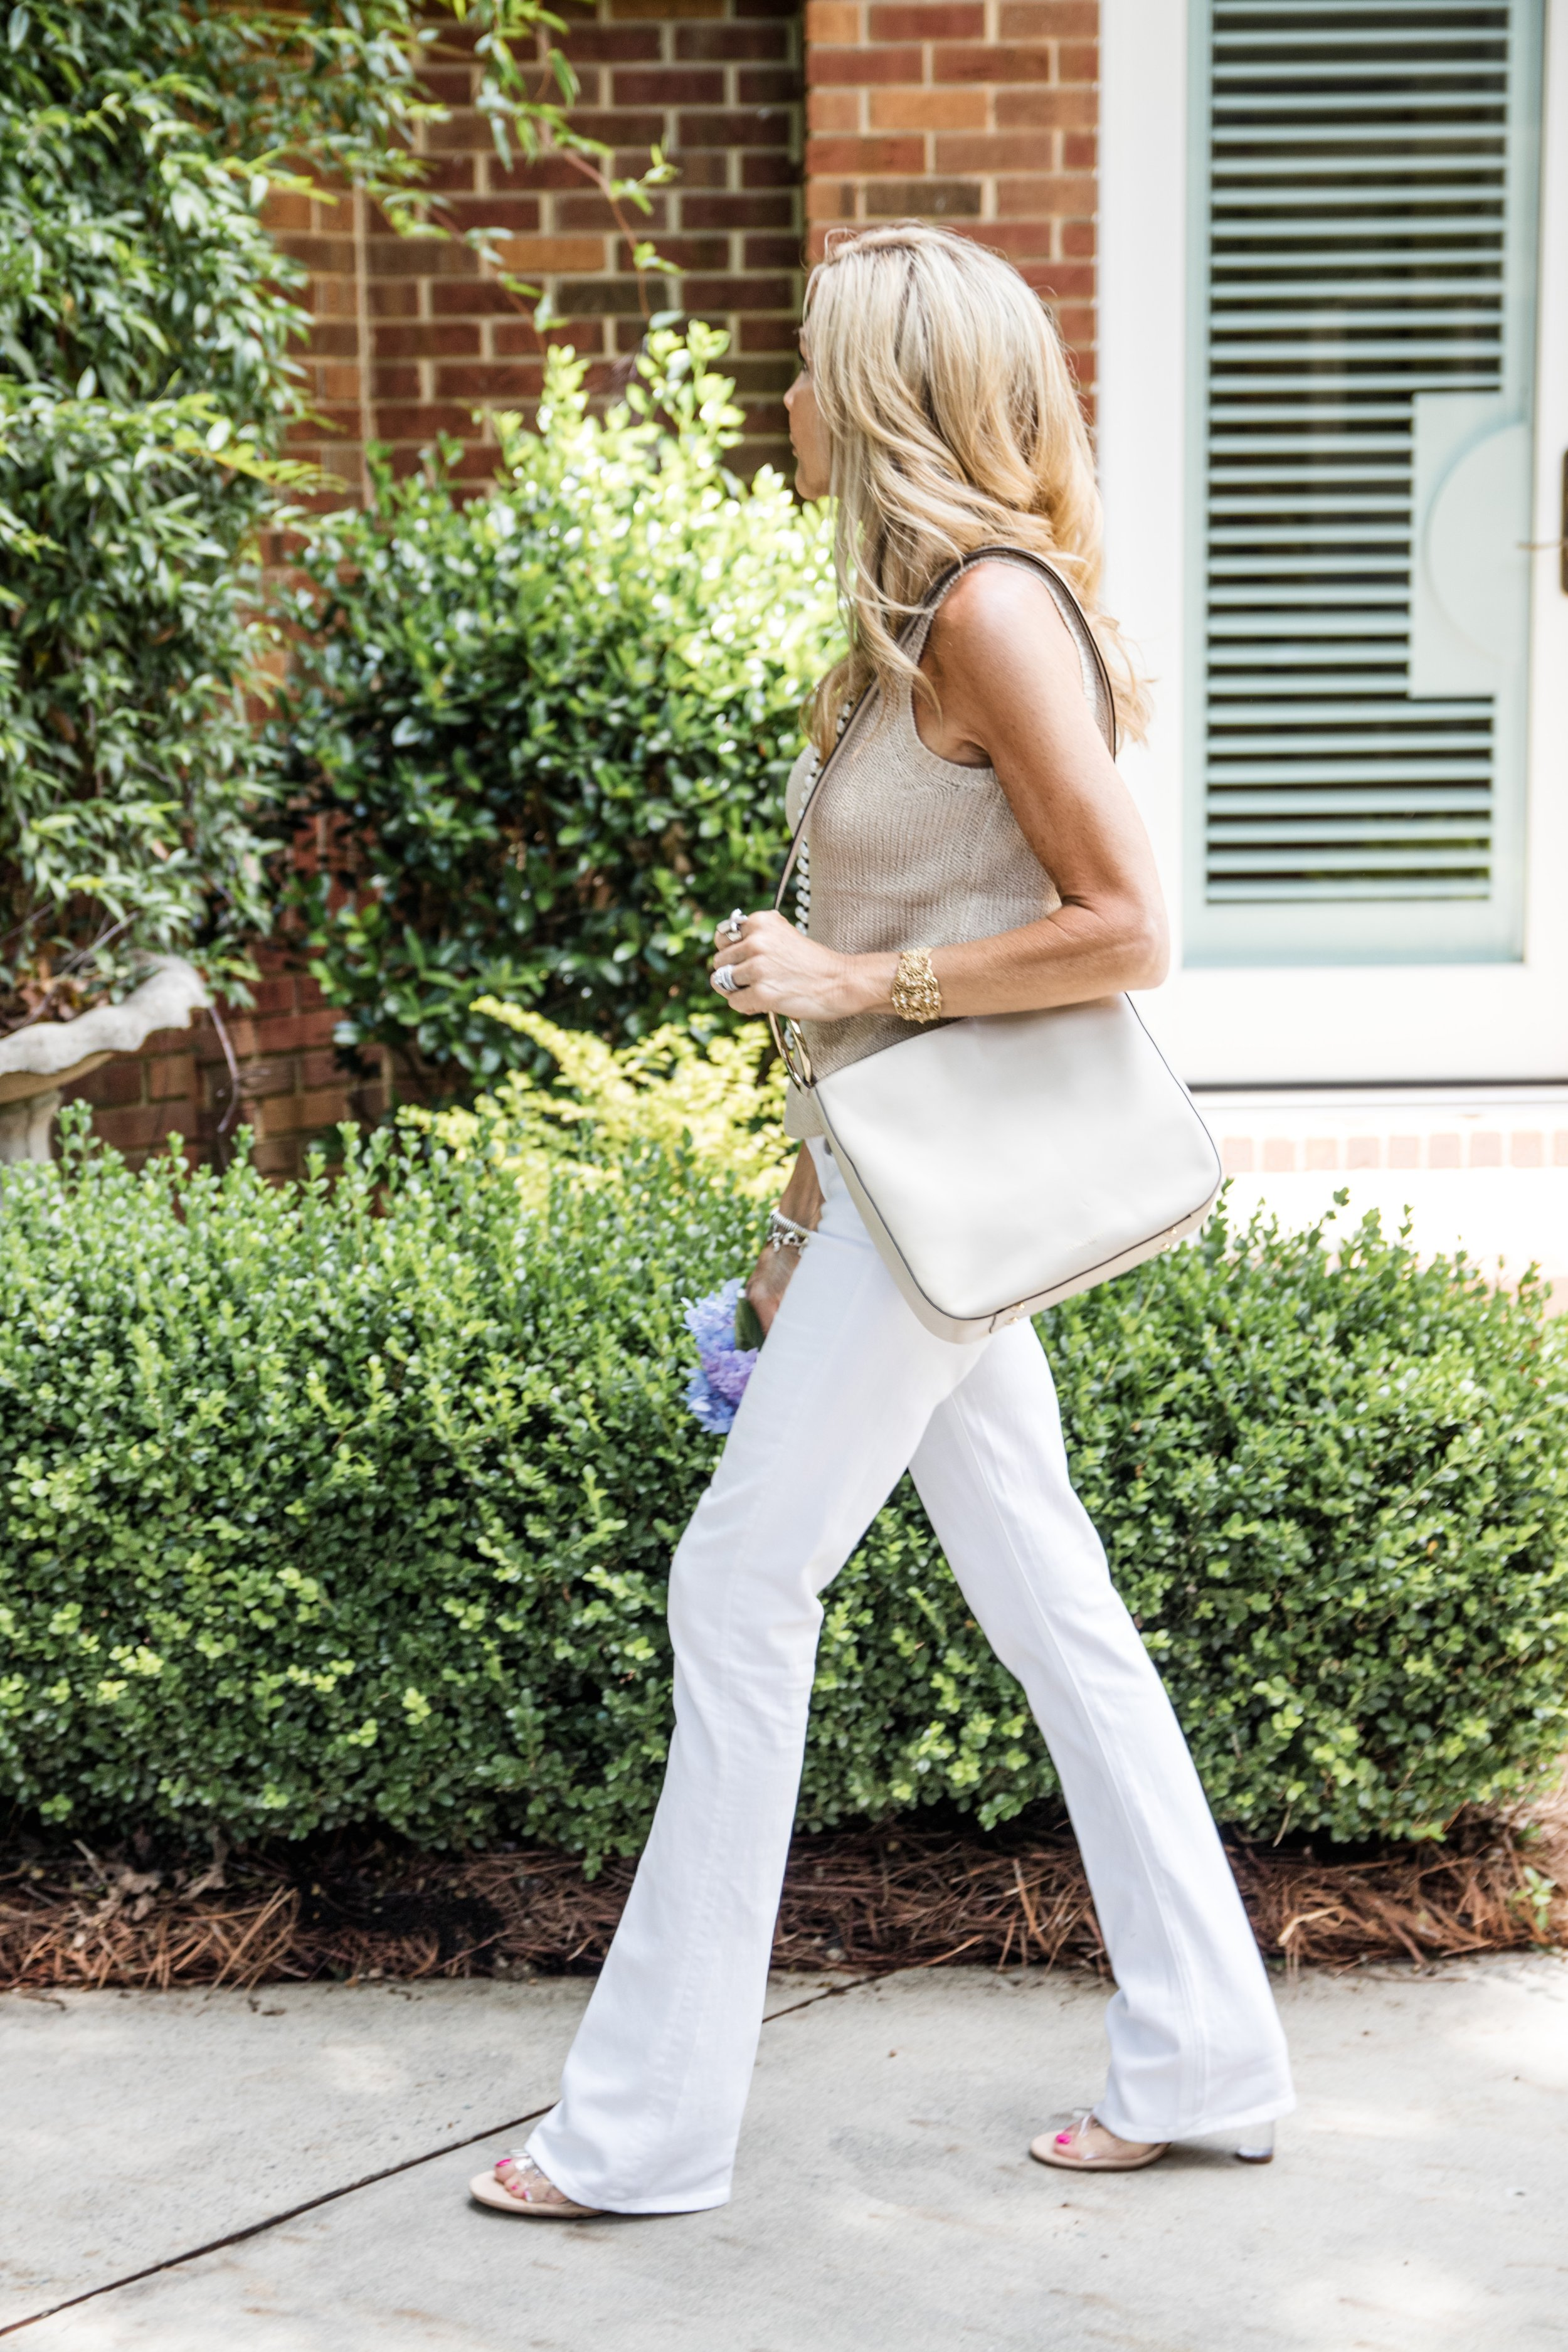 Loft Sweater with White Flare Jeans & Zara Shoes - Crazy Blonde Life